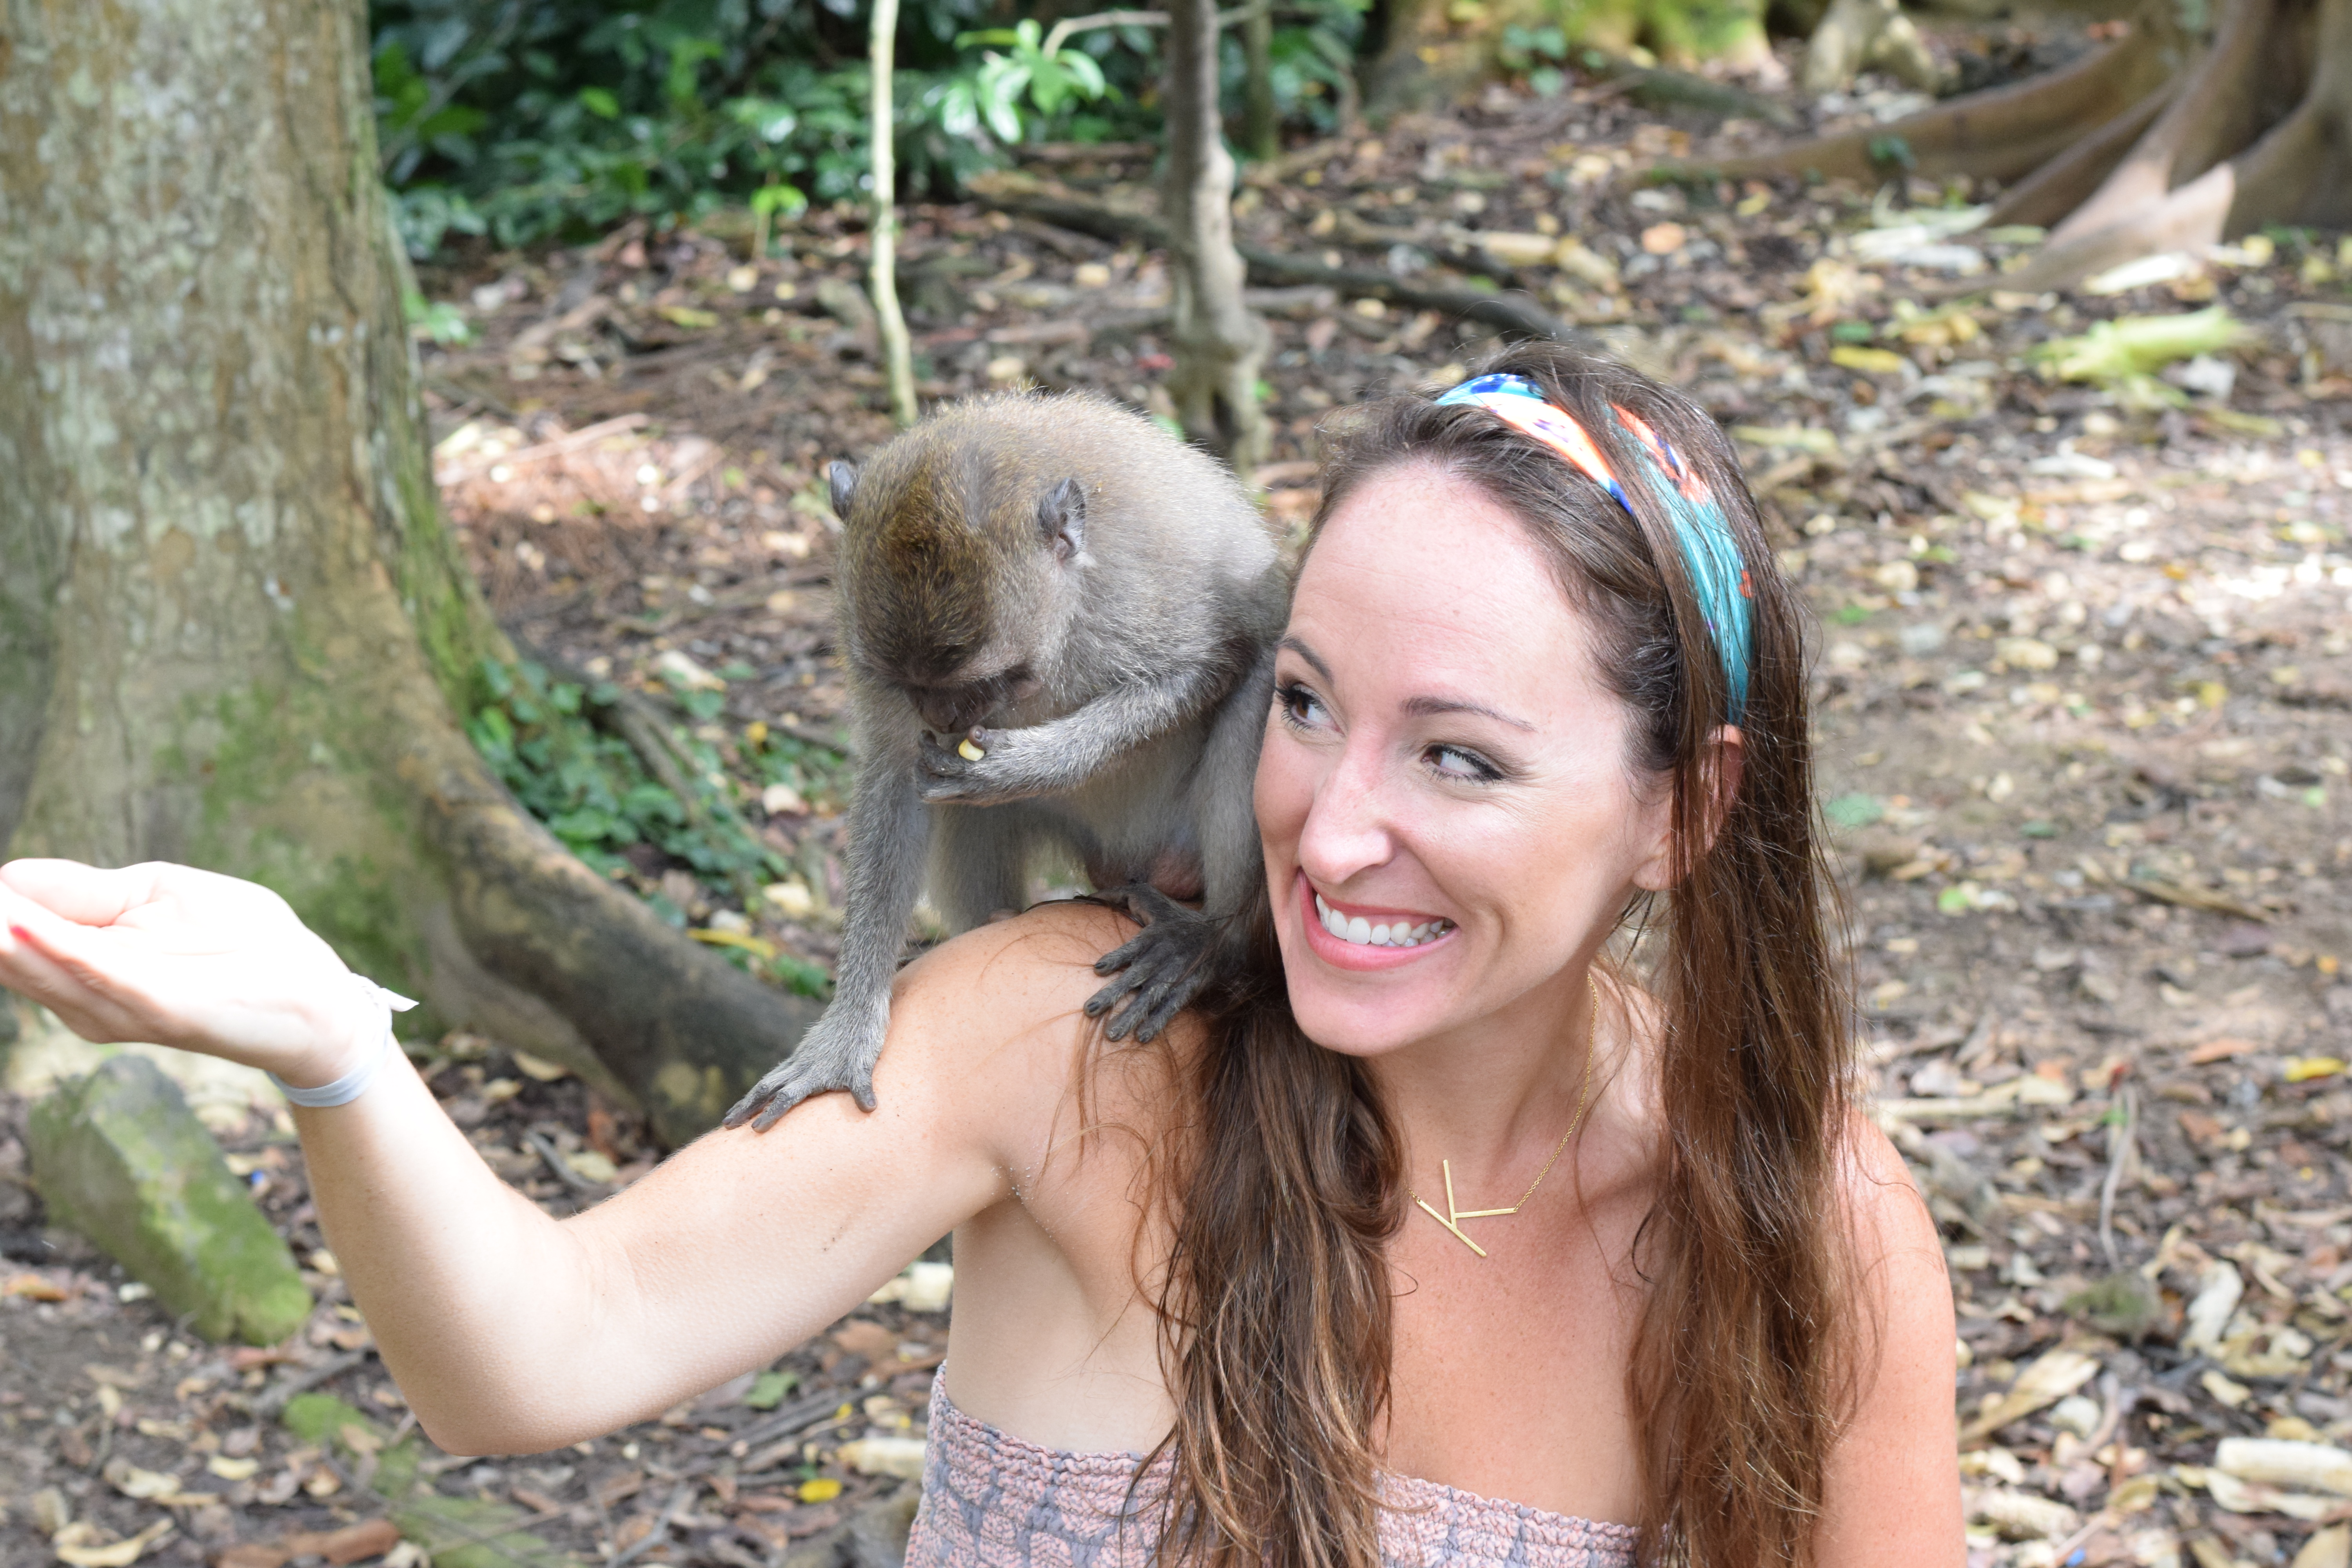 MonkeySanctuary + Forest Ubud, Bali, Indonesia - Our Bali Trip - 12 Things You Can't Miss In Ubud Bali - Ubud Bali - Ubud Monkey Forest - Ubud Travel Blog - Ubud Bali Hotels - What To Do In Ubud - #ubud #bali #travelblog